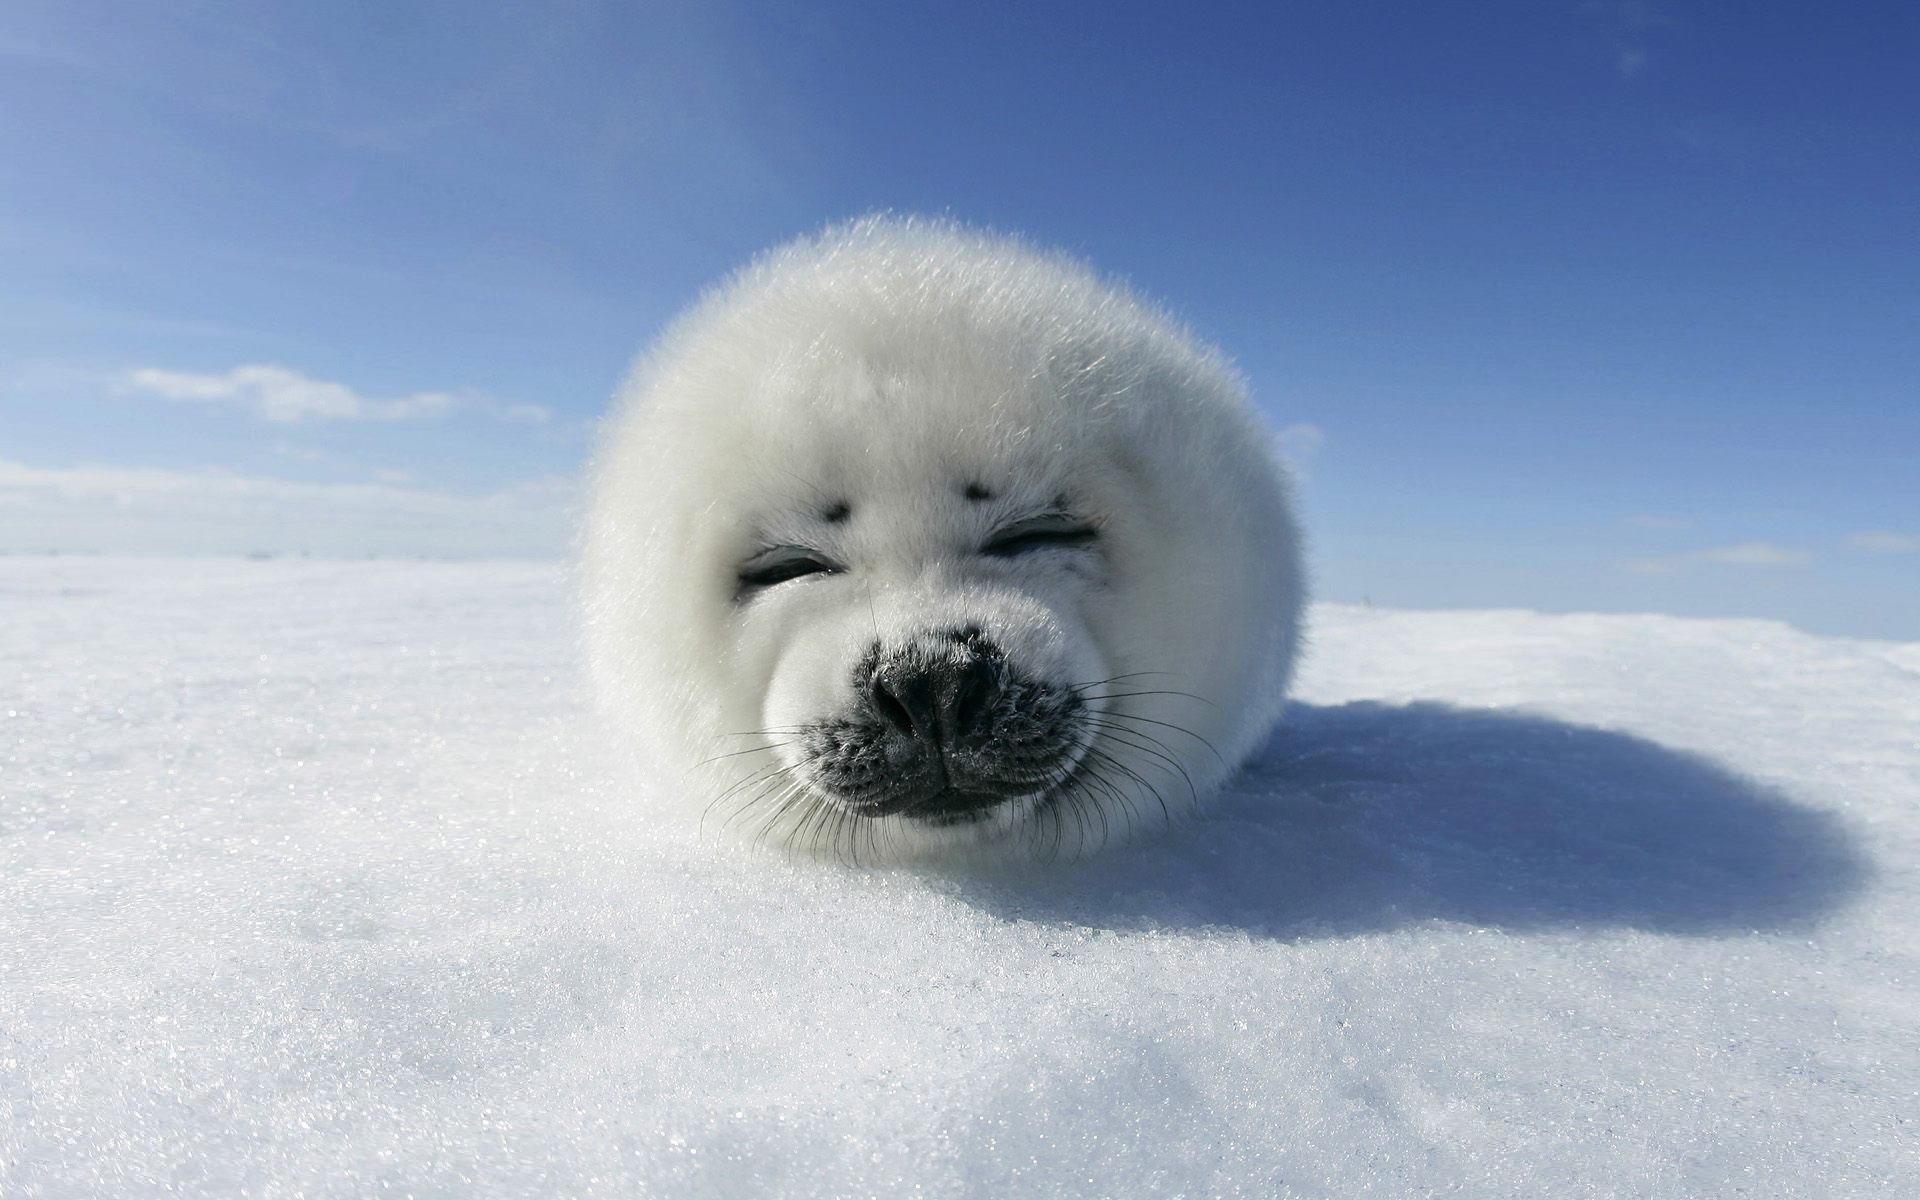 harp seal wallpaper seals animals wallpapers for free download about